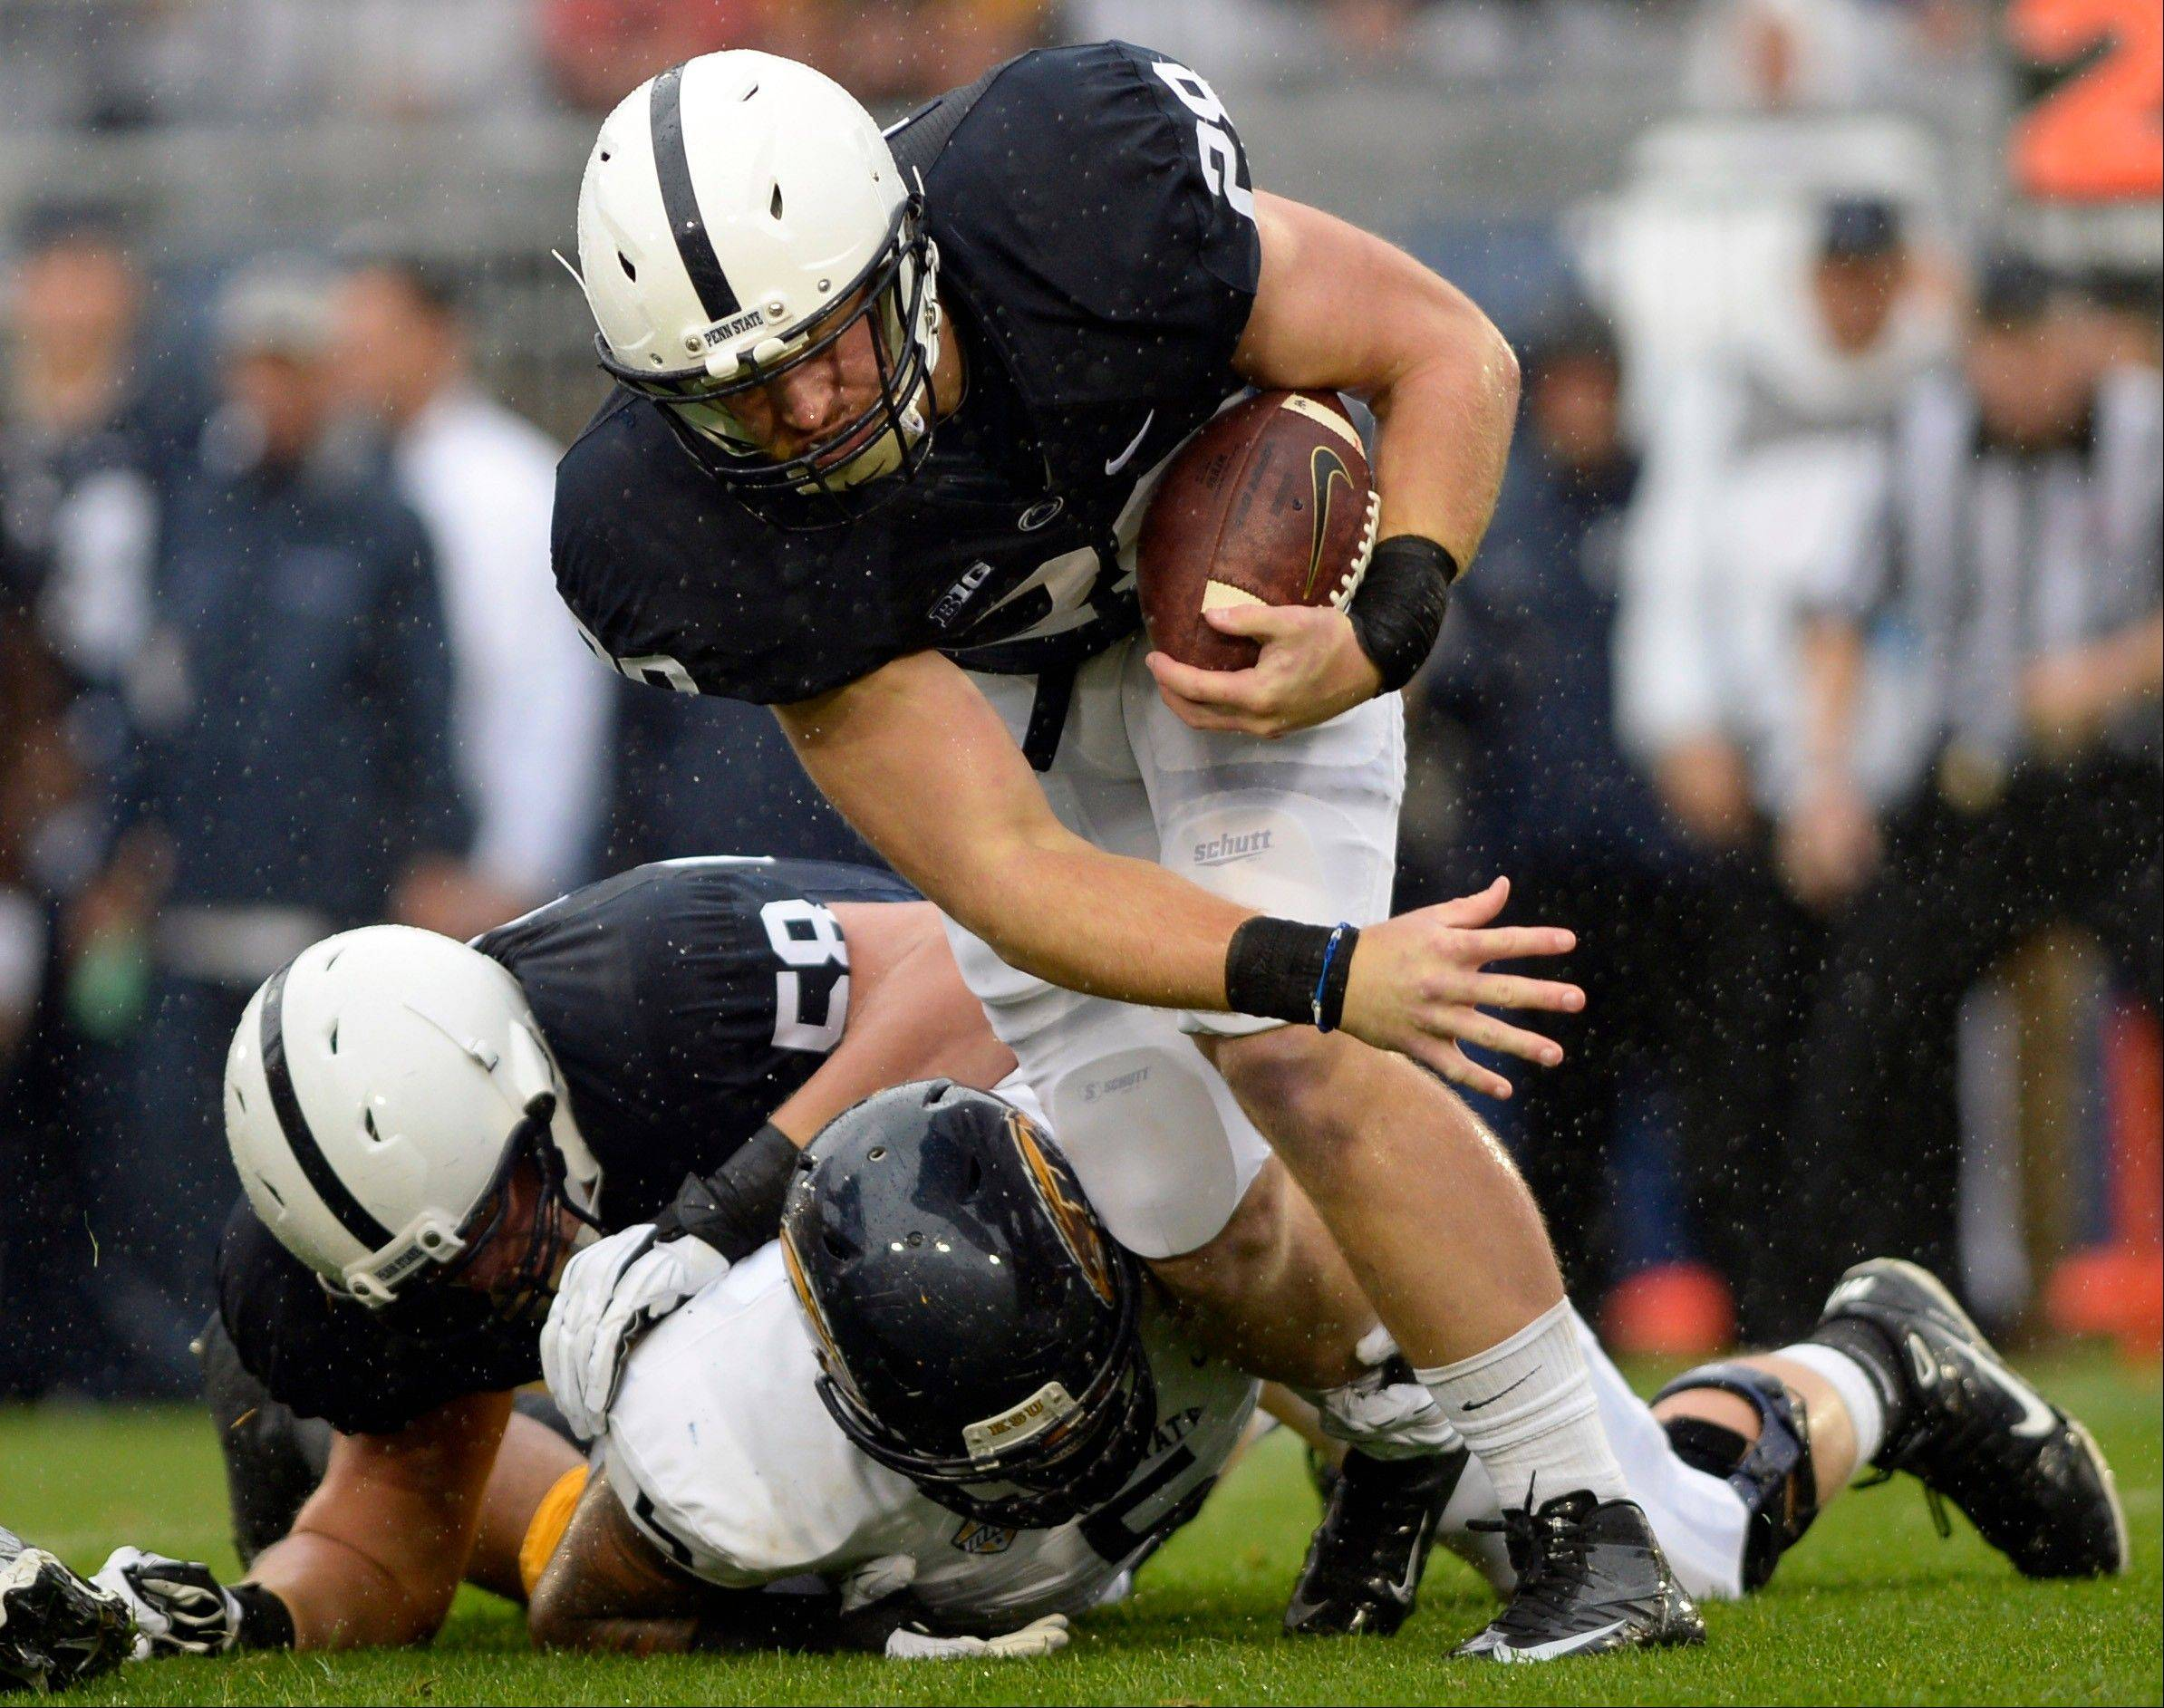 Zwinak scores 3 TDs as Penn State shuts out Kent State